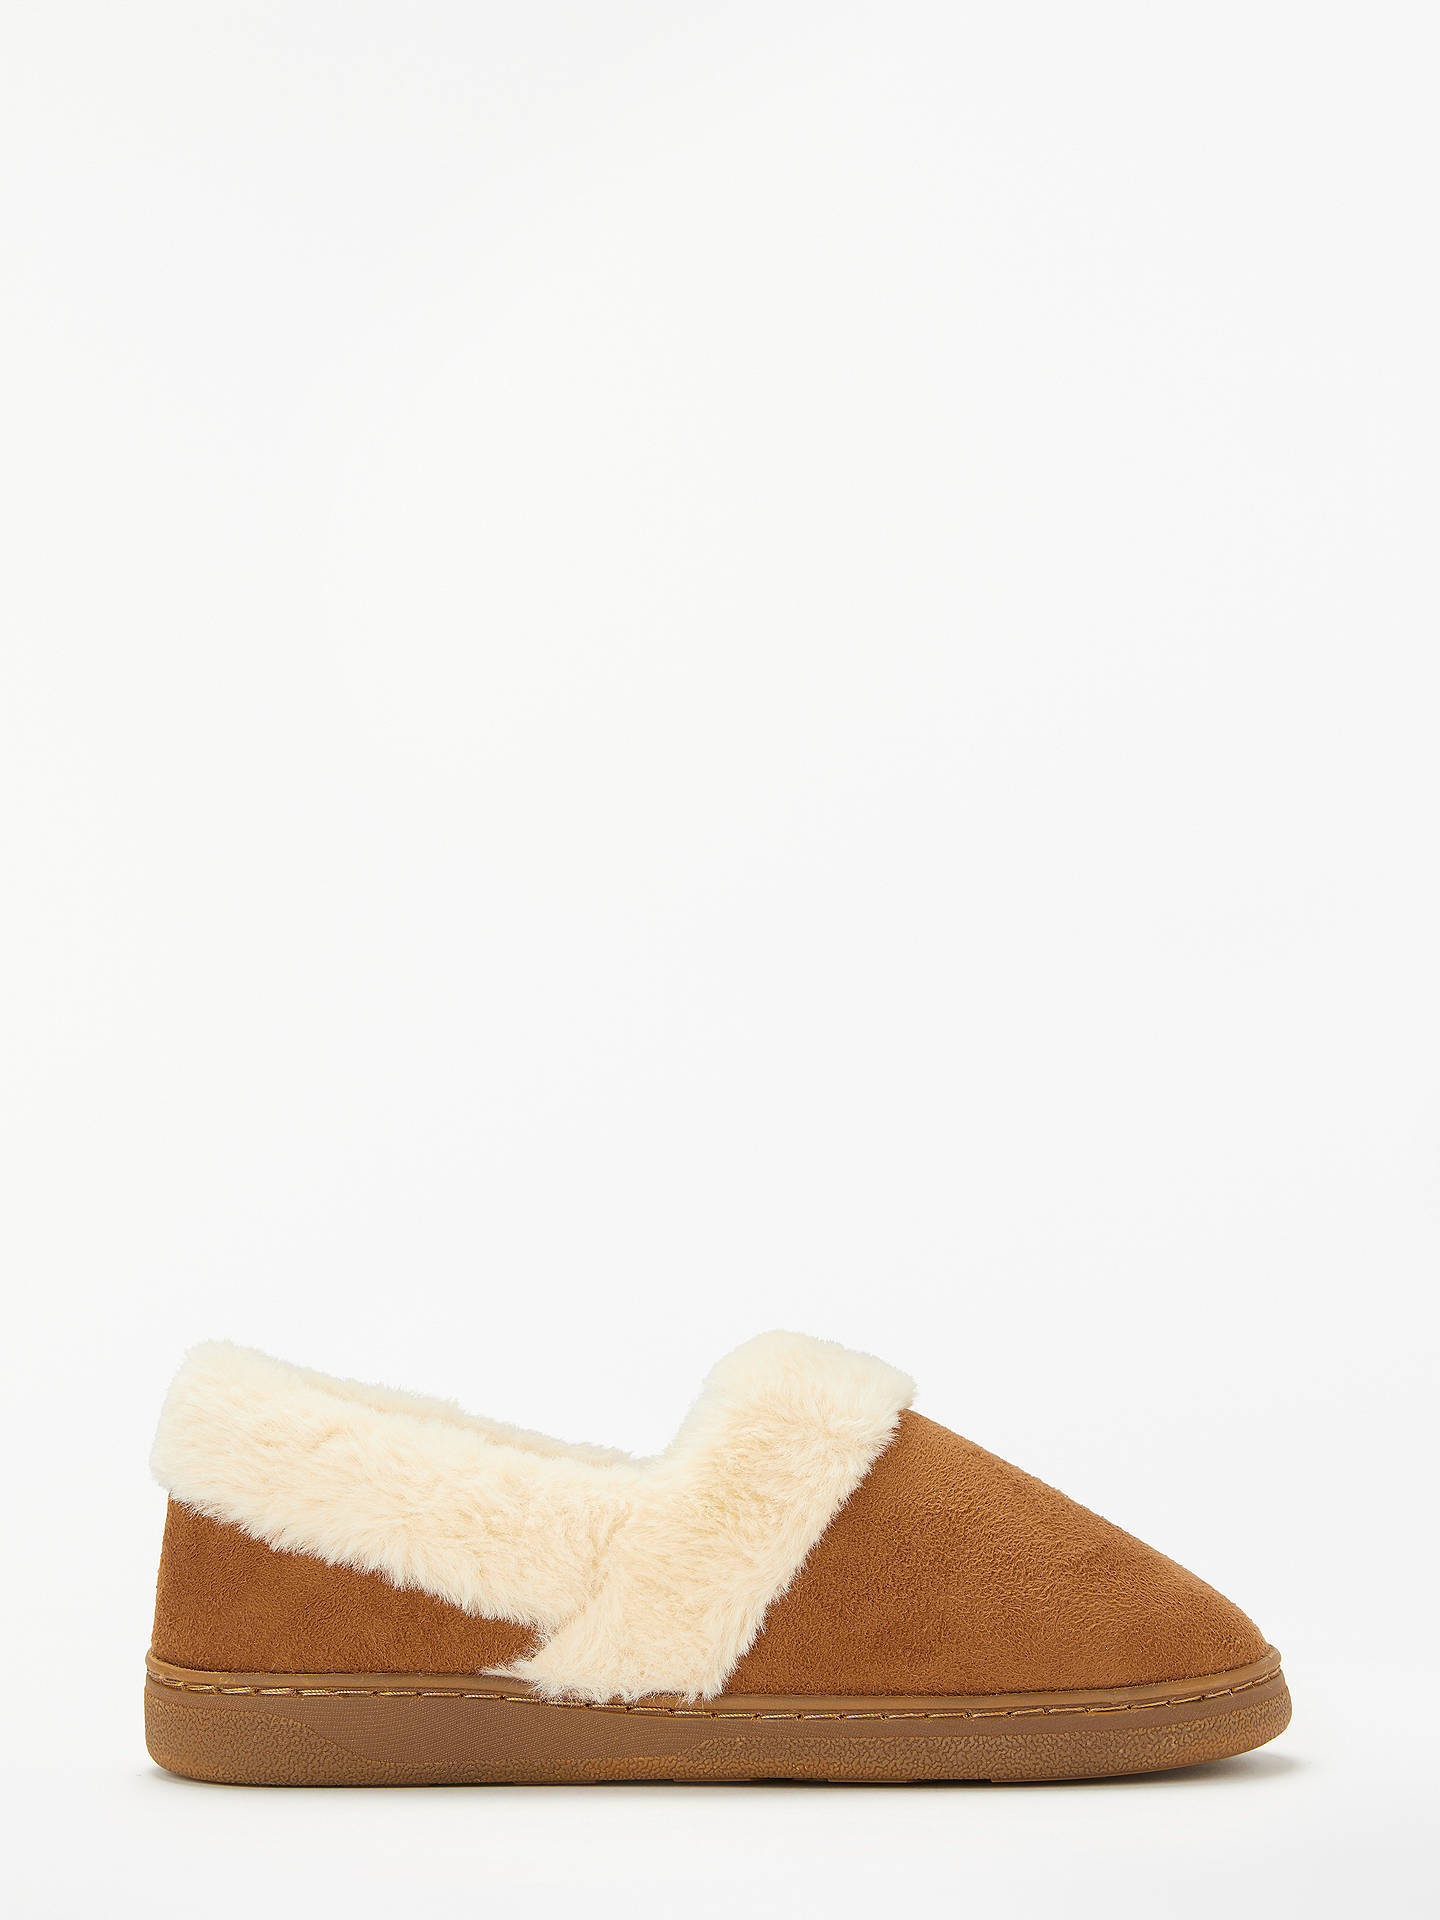 BuyJohn Lewis & Partners Comfort Cuff Boot Slippers, Chestnut, 3-4 Online at johnlewis.com